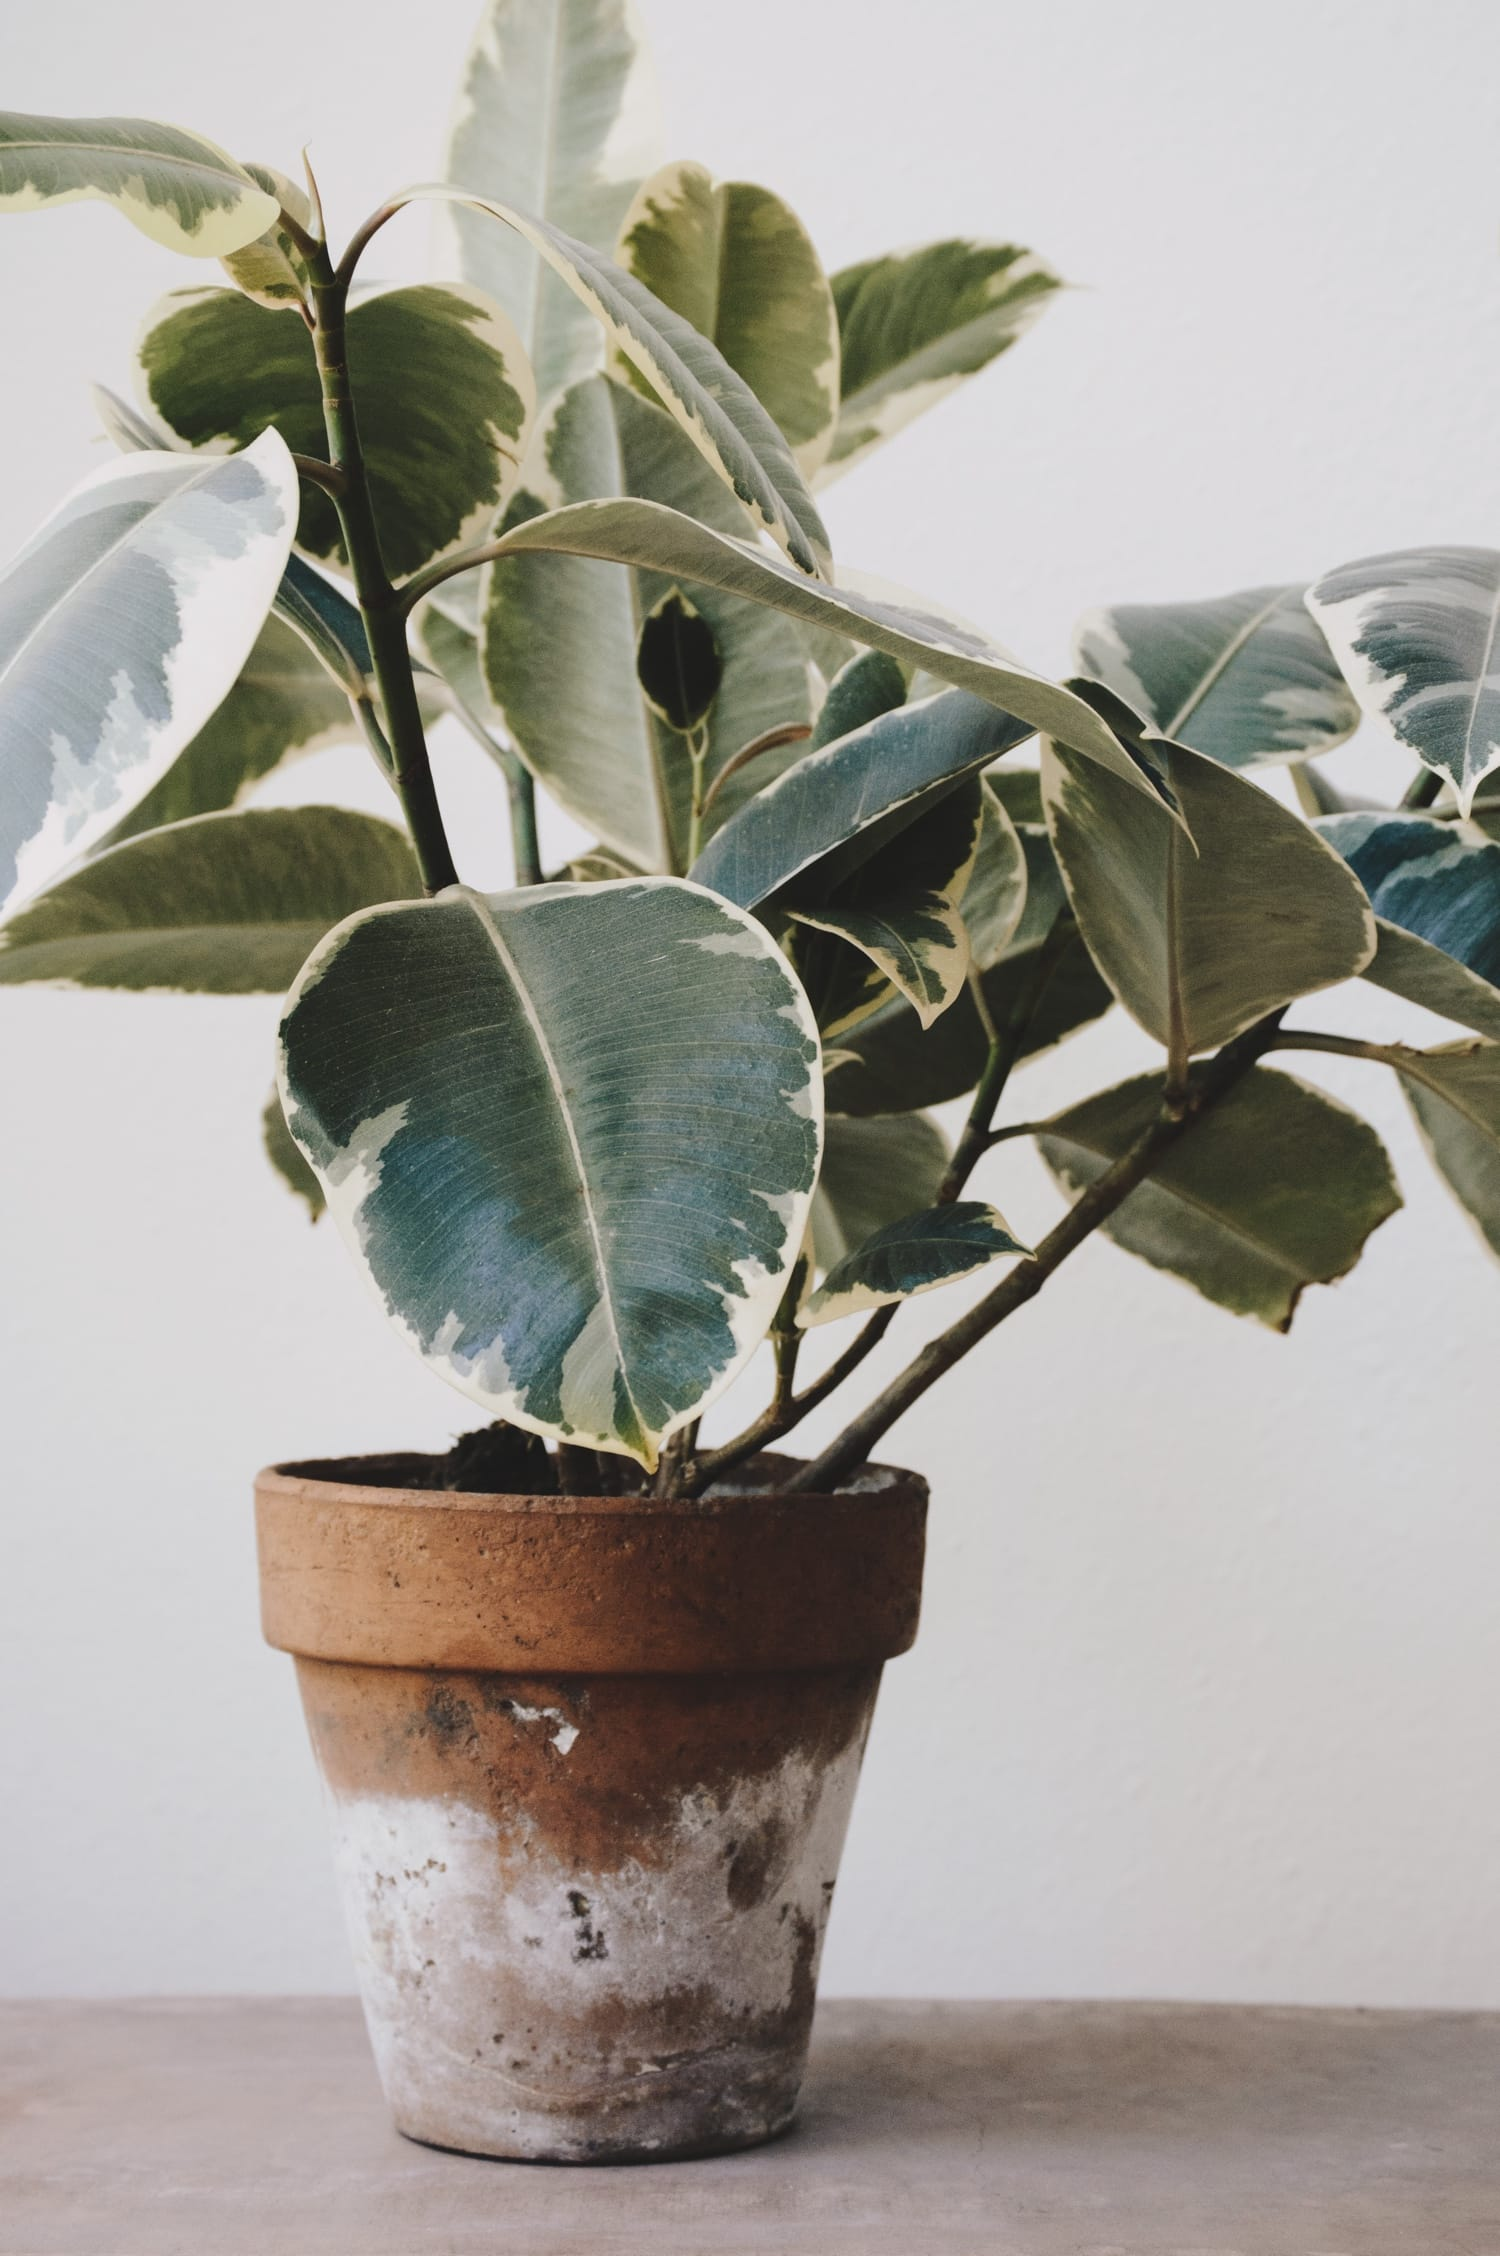 plant for air quality